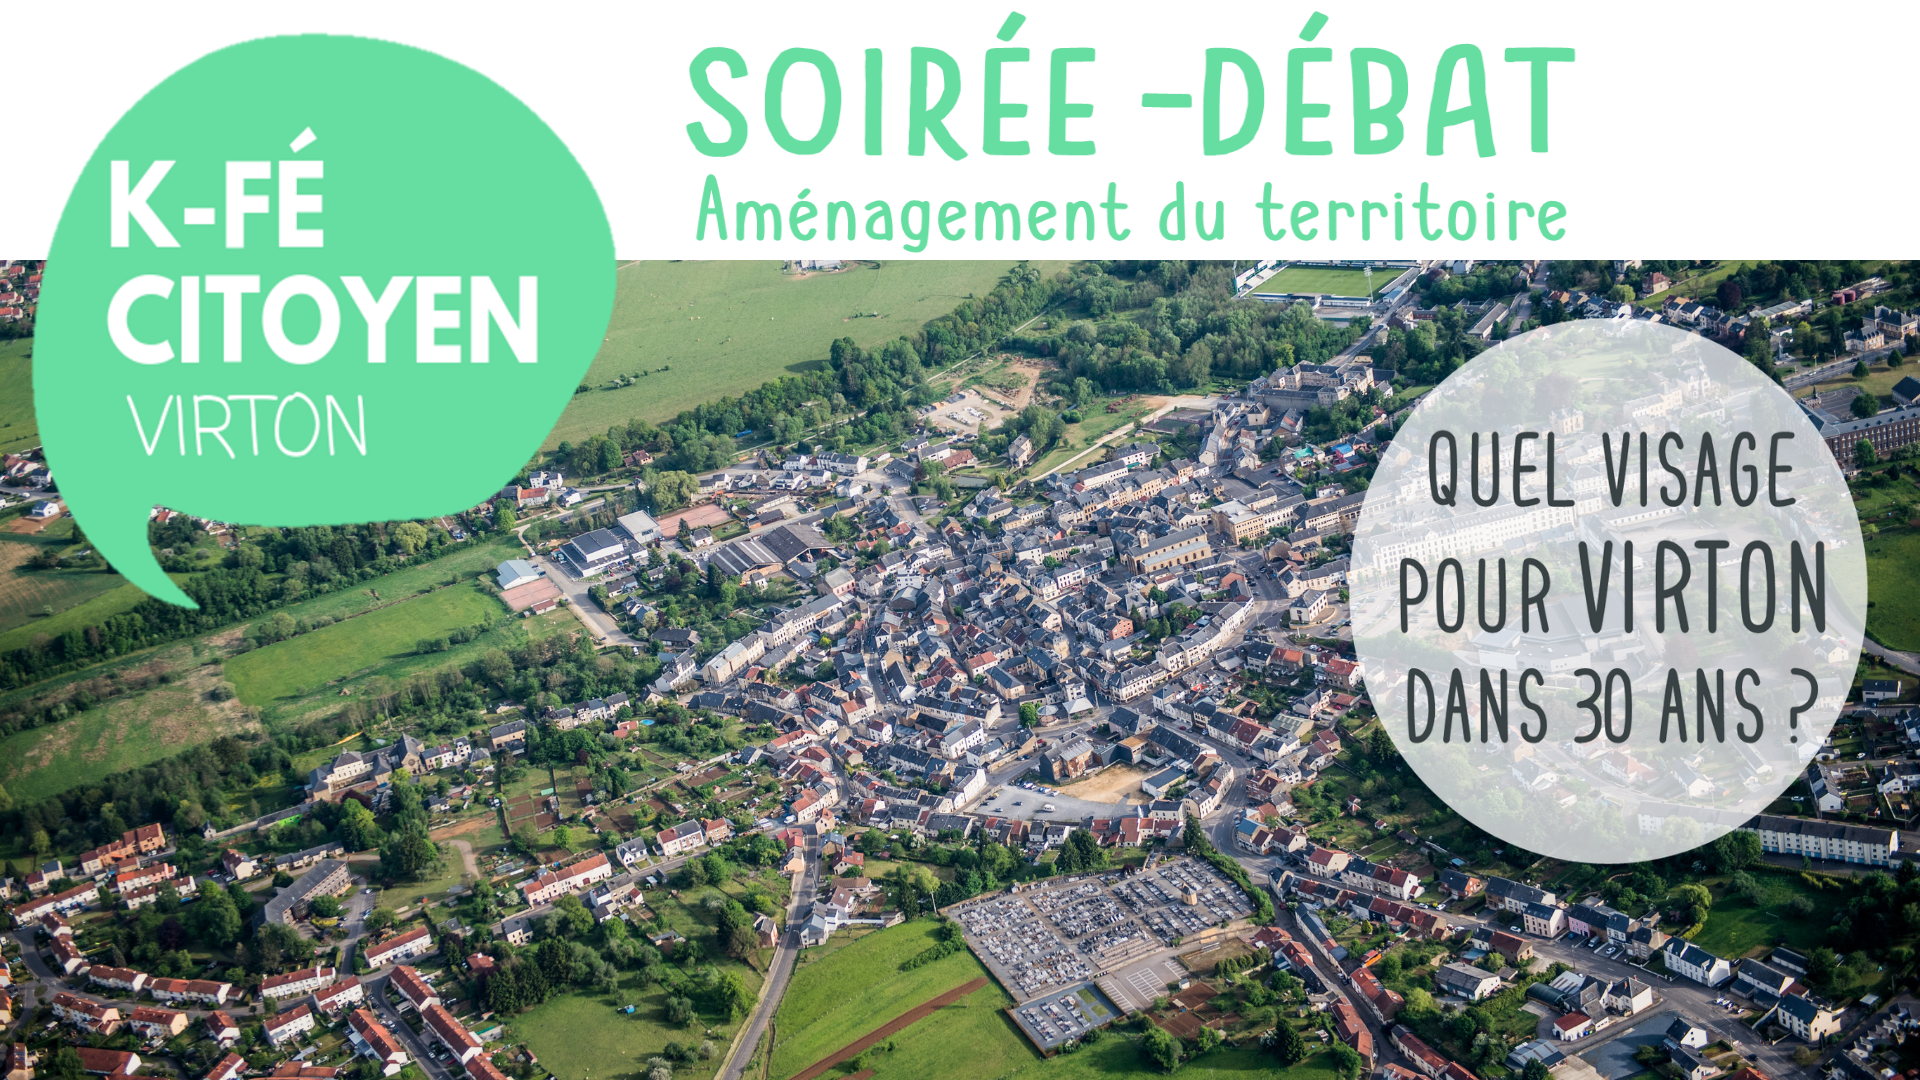 Kfe citoyen amenagement du territoire